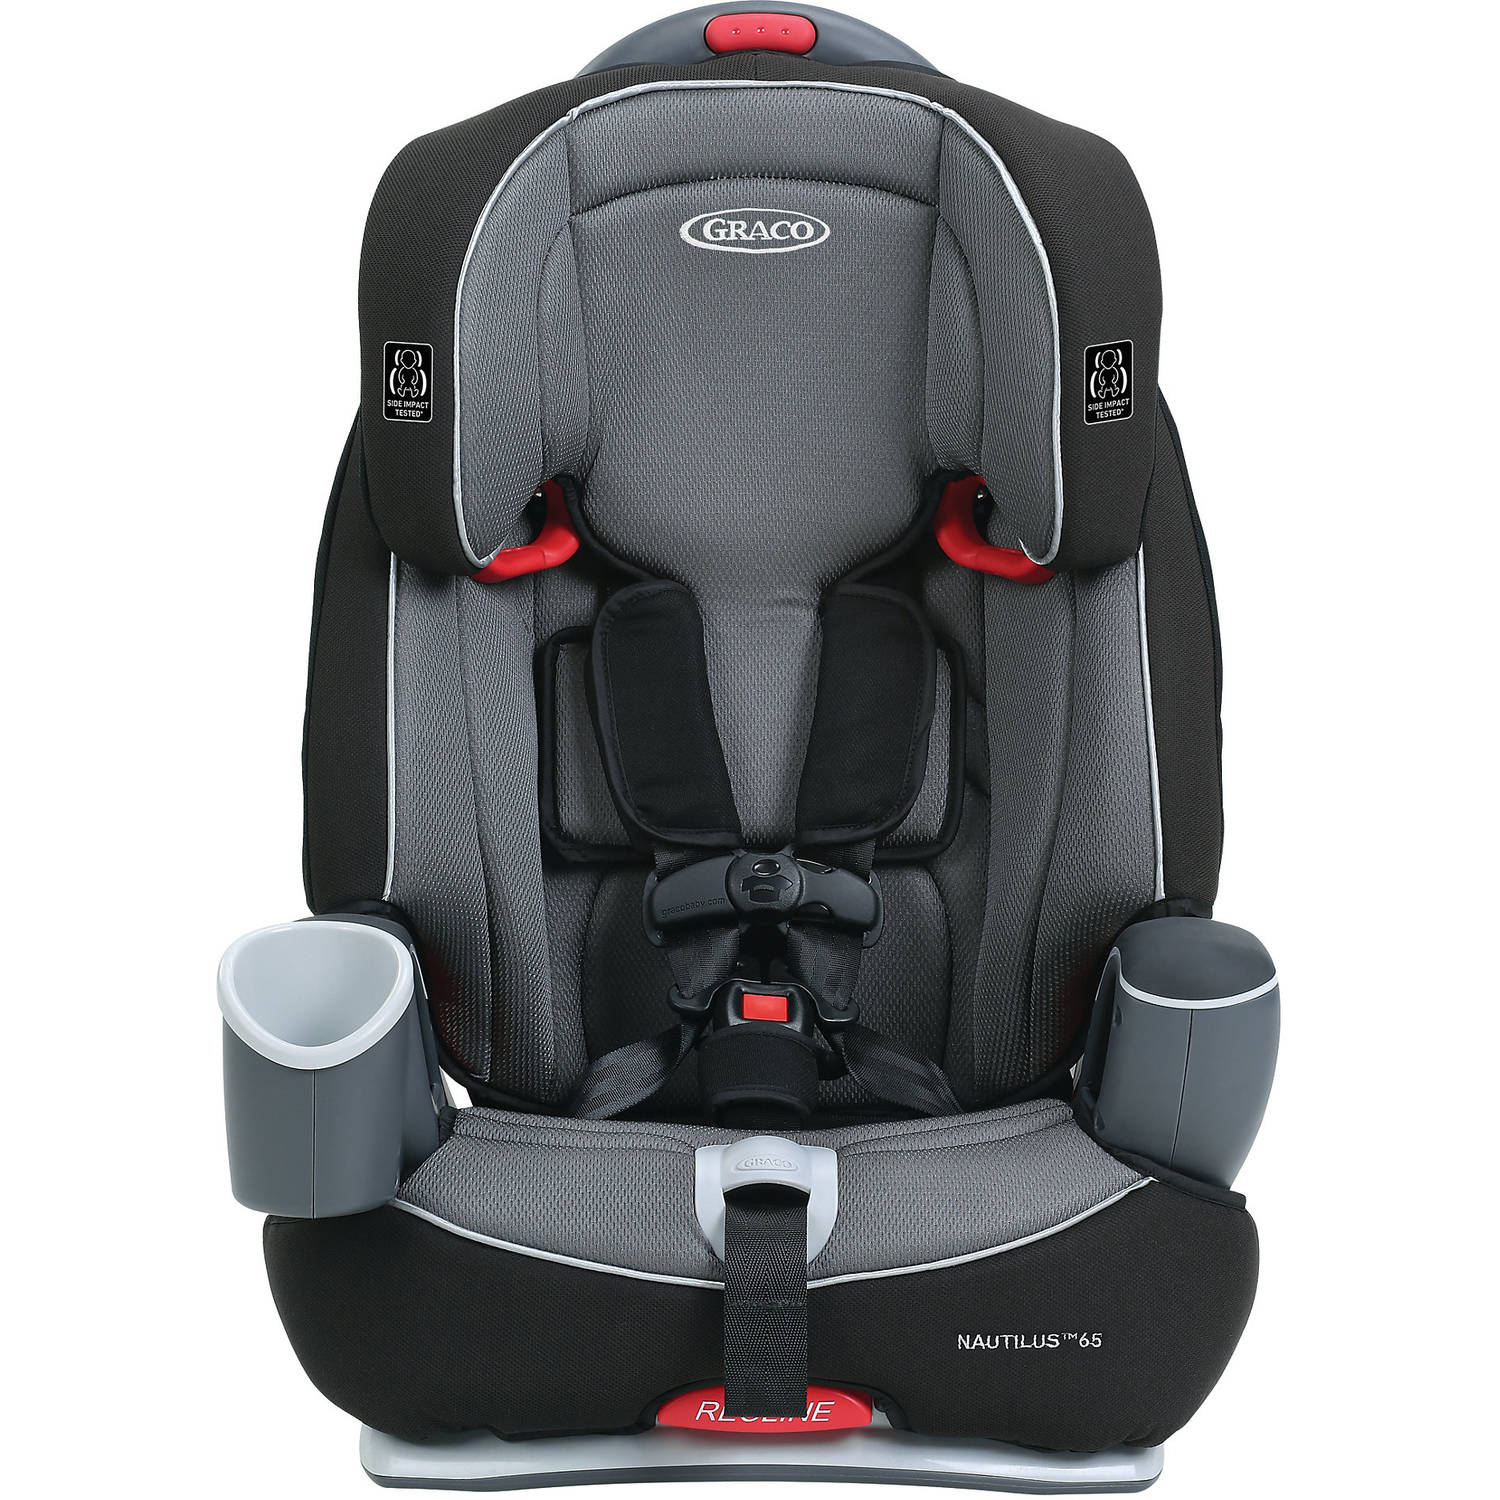 Graco Nautilus 3 In 1 Car Seat With Safety Surround >> Graco Nautilus 65 3-in-1 Multi-Use Harness Booster Car ...